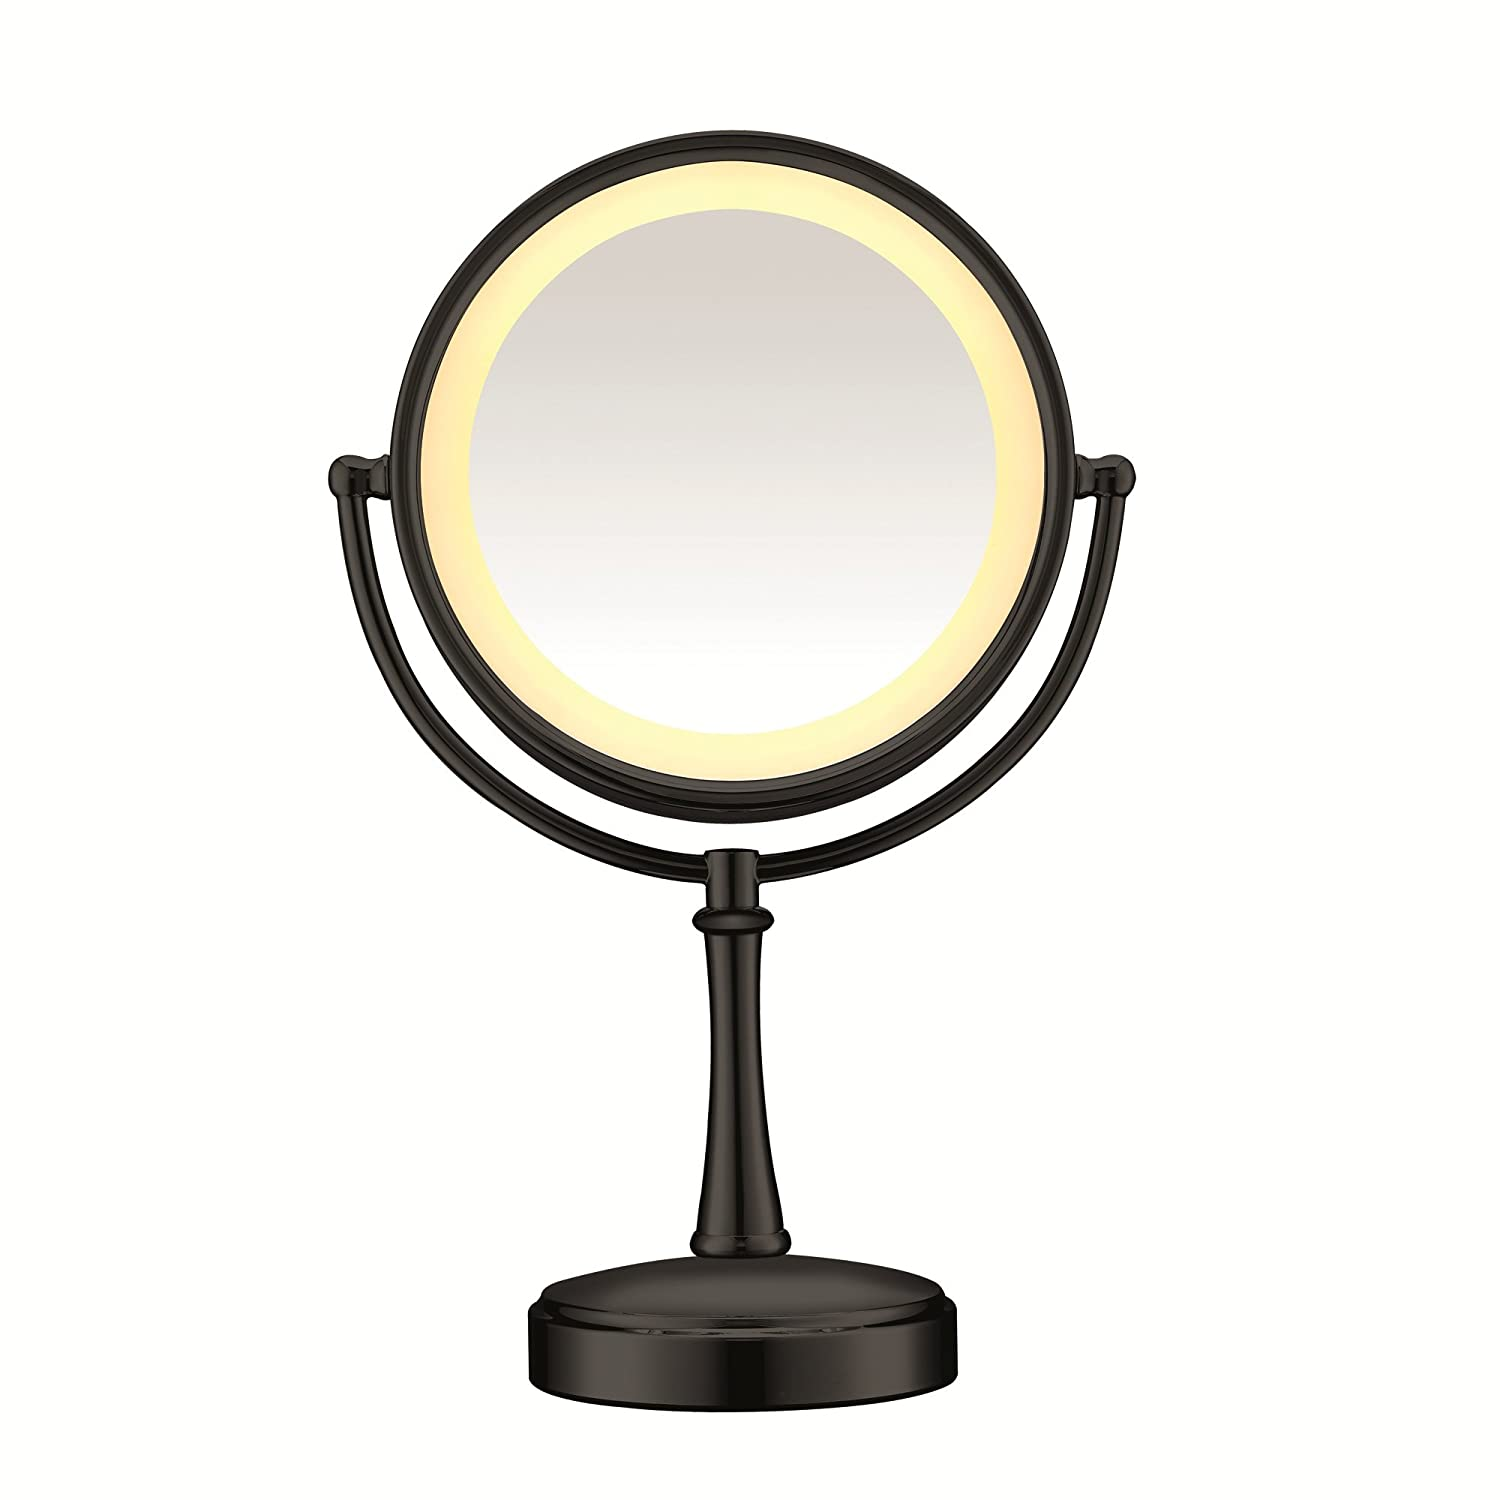 Conair 3-Way Touch Control Lighted Makeup Mirror